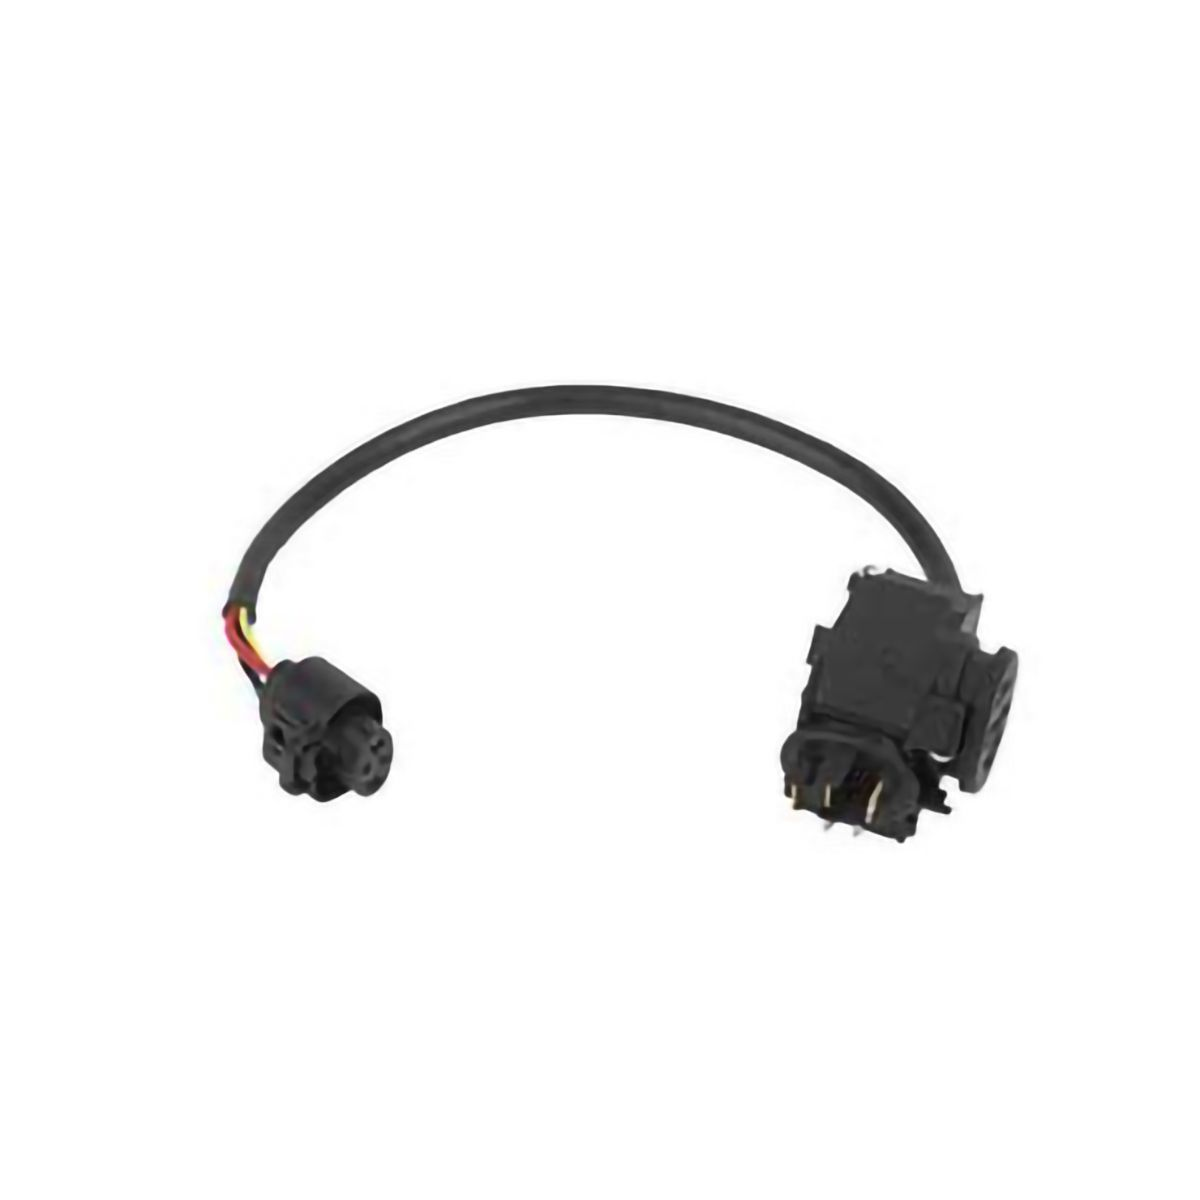 cable for PowerPack frame-mounted e-bike battery